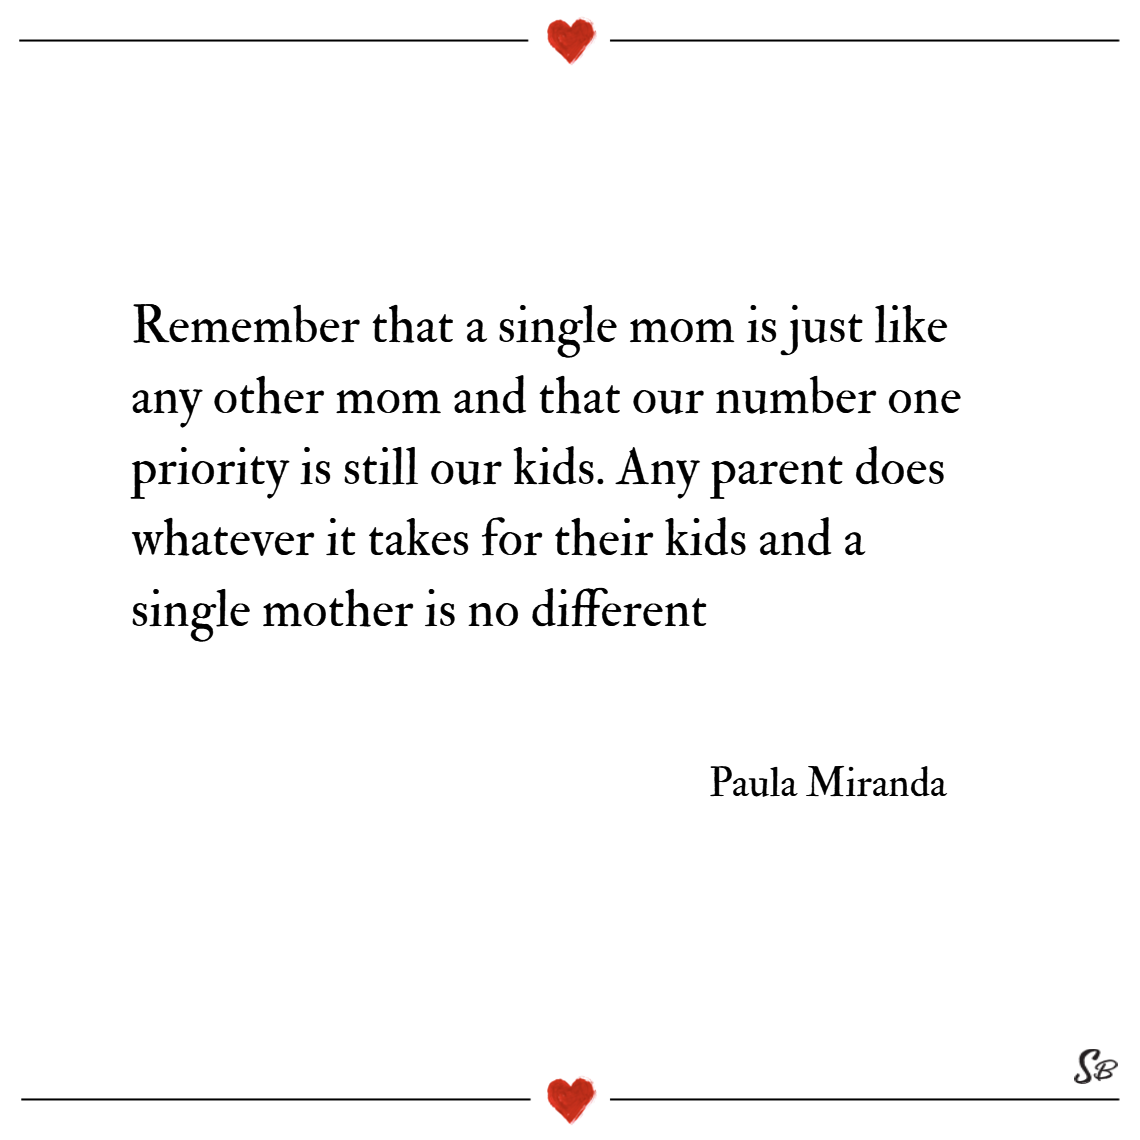 Remember that a single mom is just like any other mom and that our